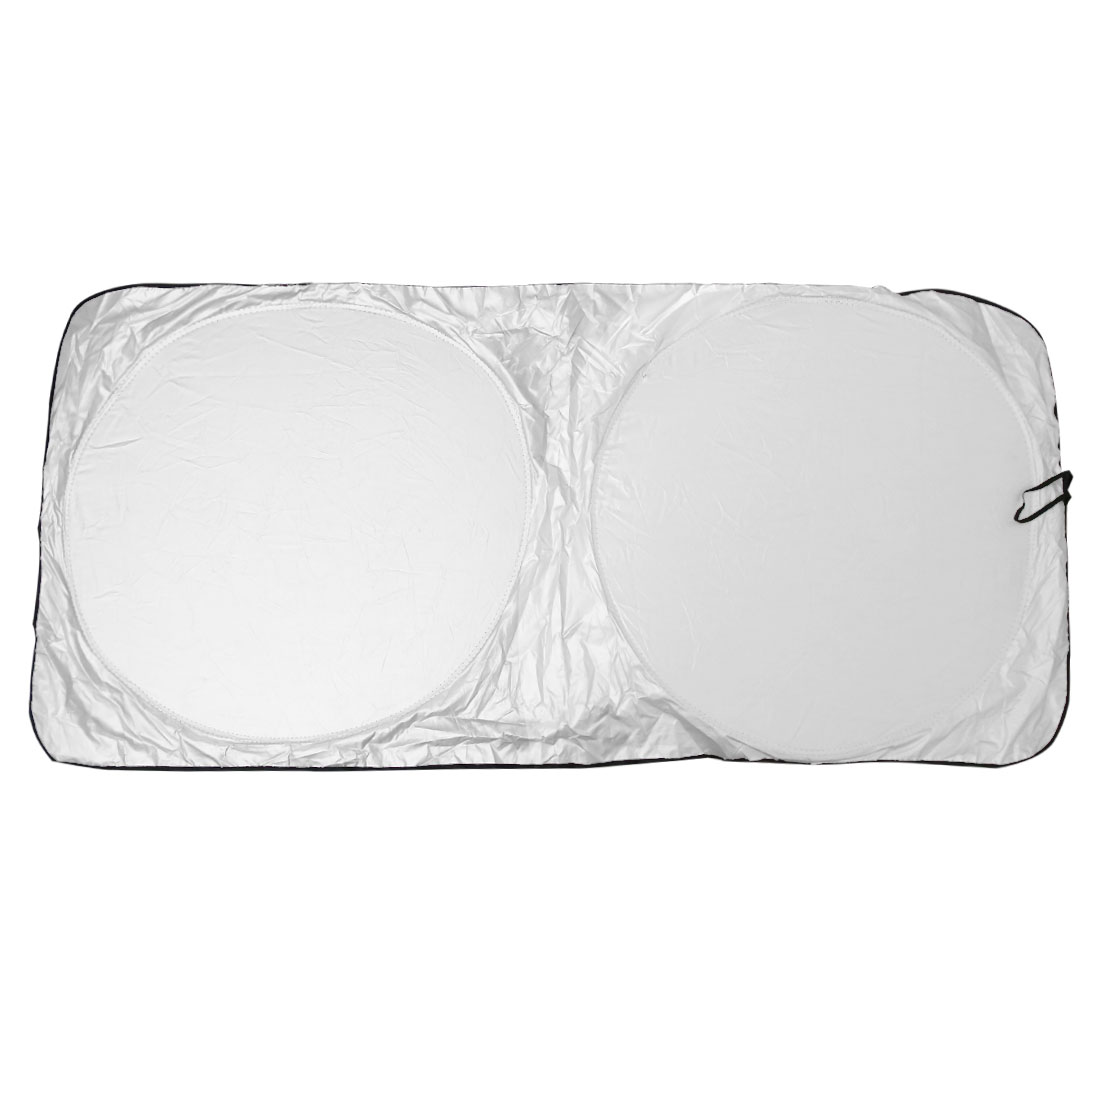 Silver Tone Folding Car Front Visor Windshield Sun Shade Protection Cover